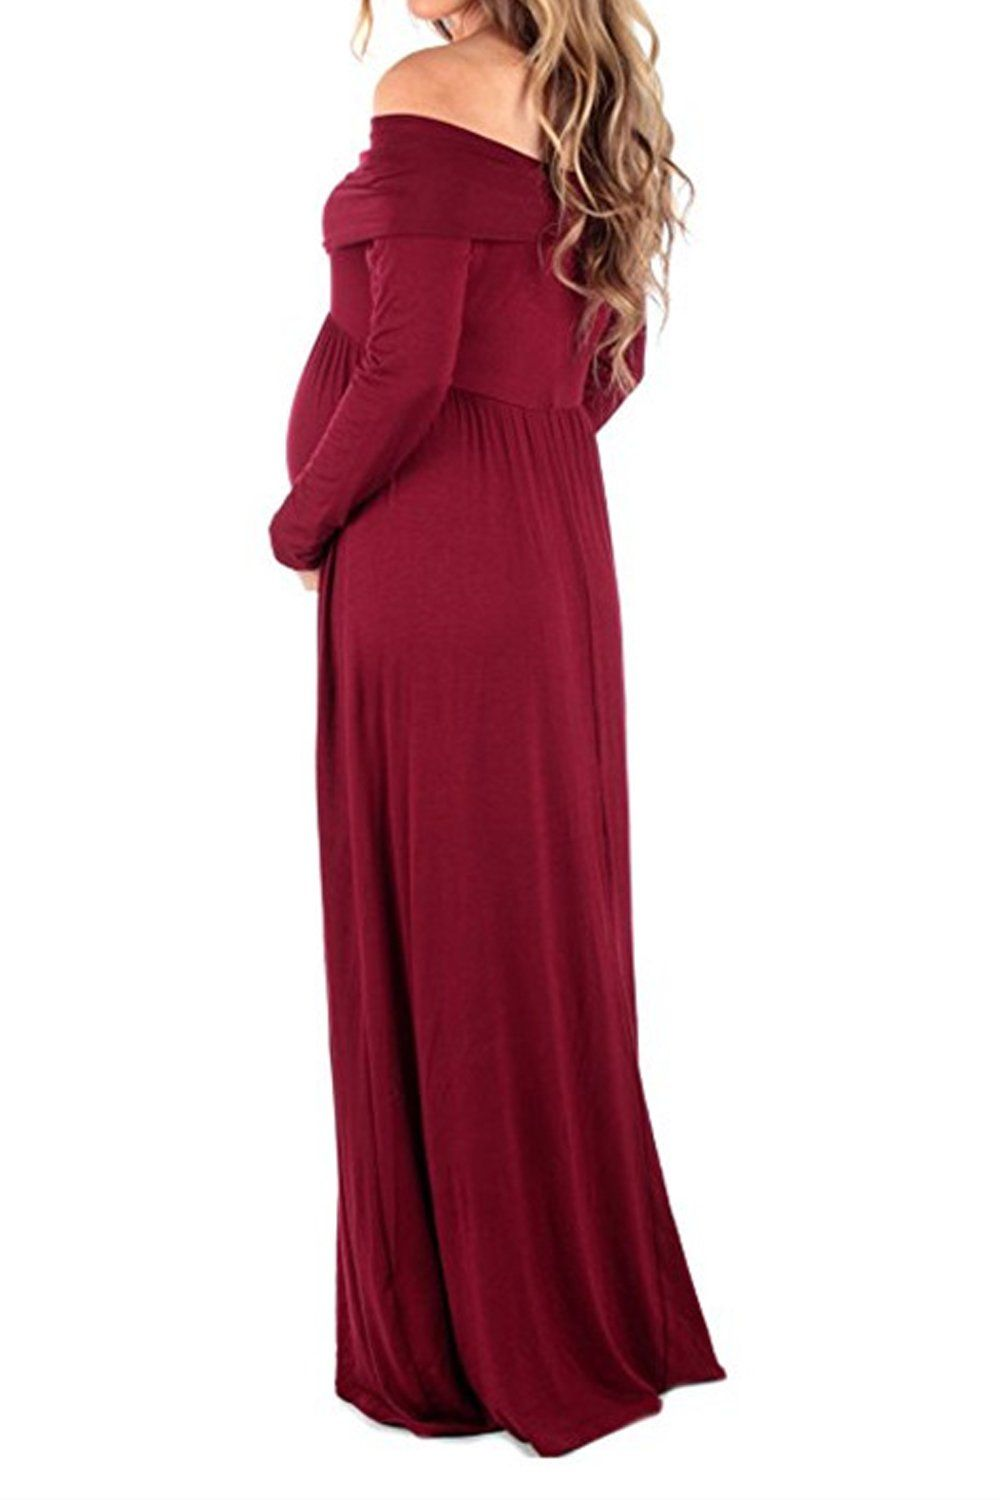 697f94c62d963 Women Maternity Clothes - Maternity Dress Ruffle Off Shoulder Long Sleeve  Pregnant Gown High Waist Short Long Maxi Dress Red S *** Look into this  wonderful ...